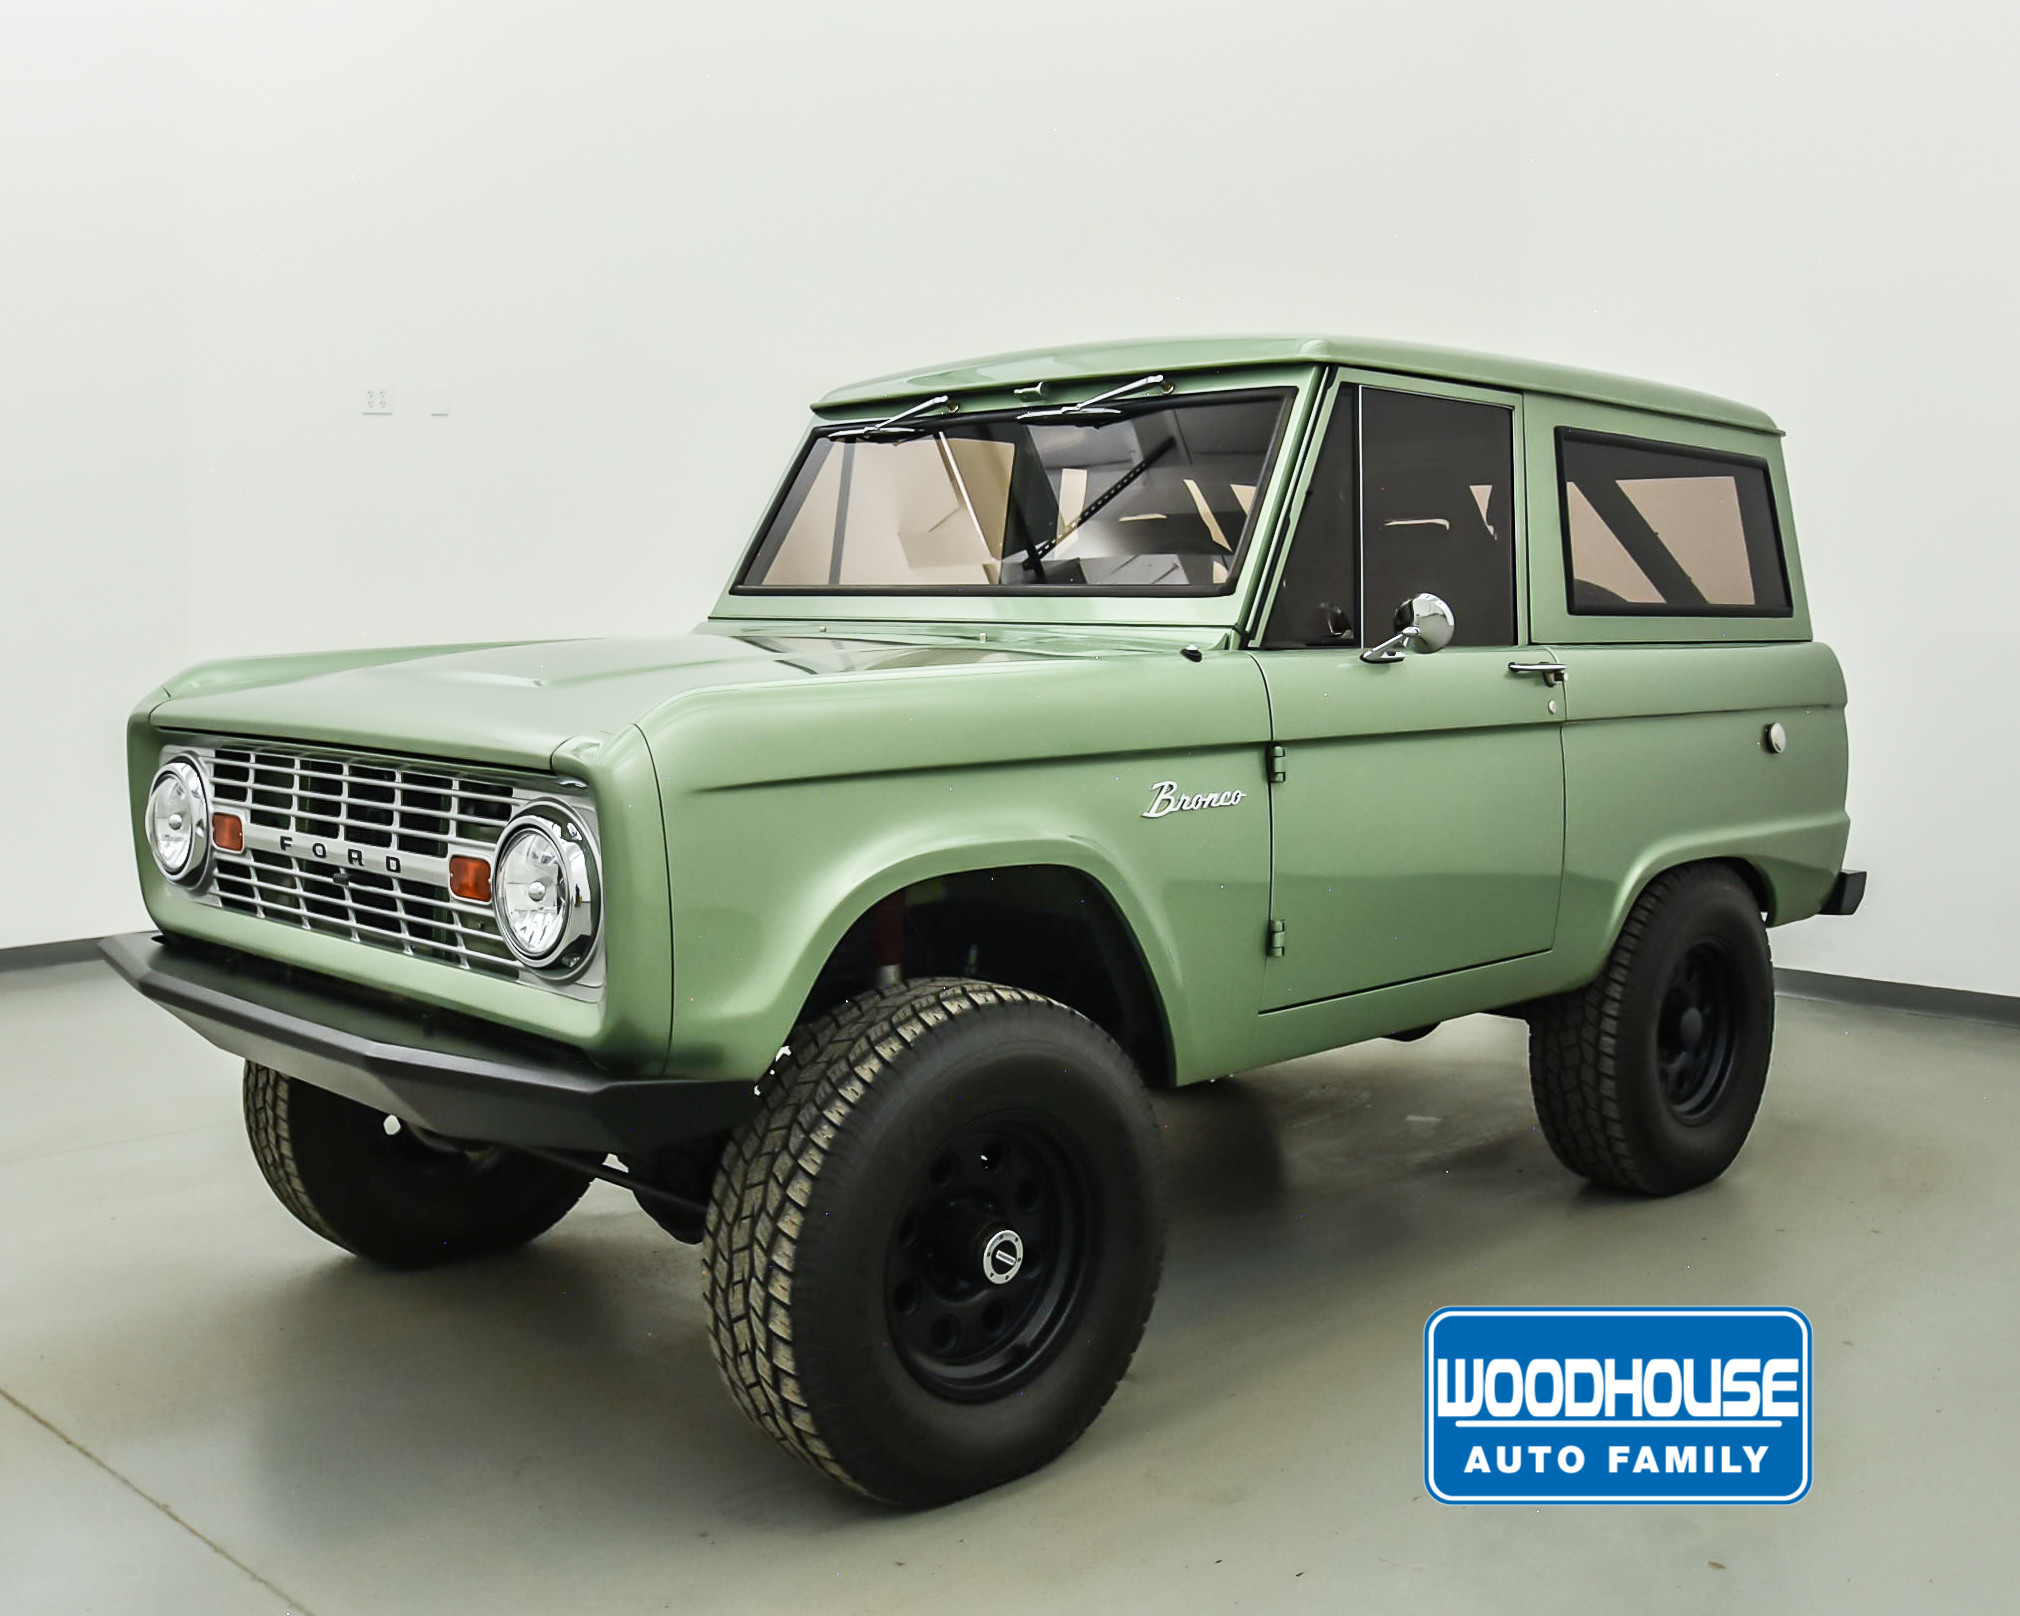 2016 Ford Bronco Price >> Woodhouse Used 1966 Ford Bronco For Sale Porsche Omaha